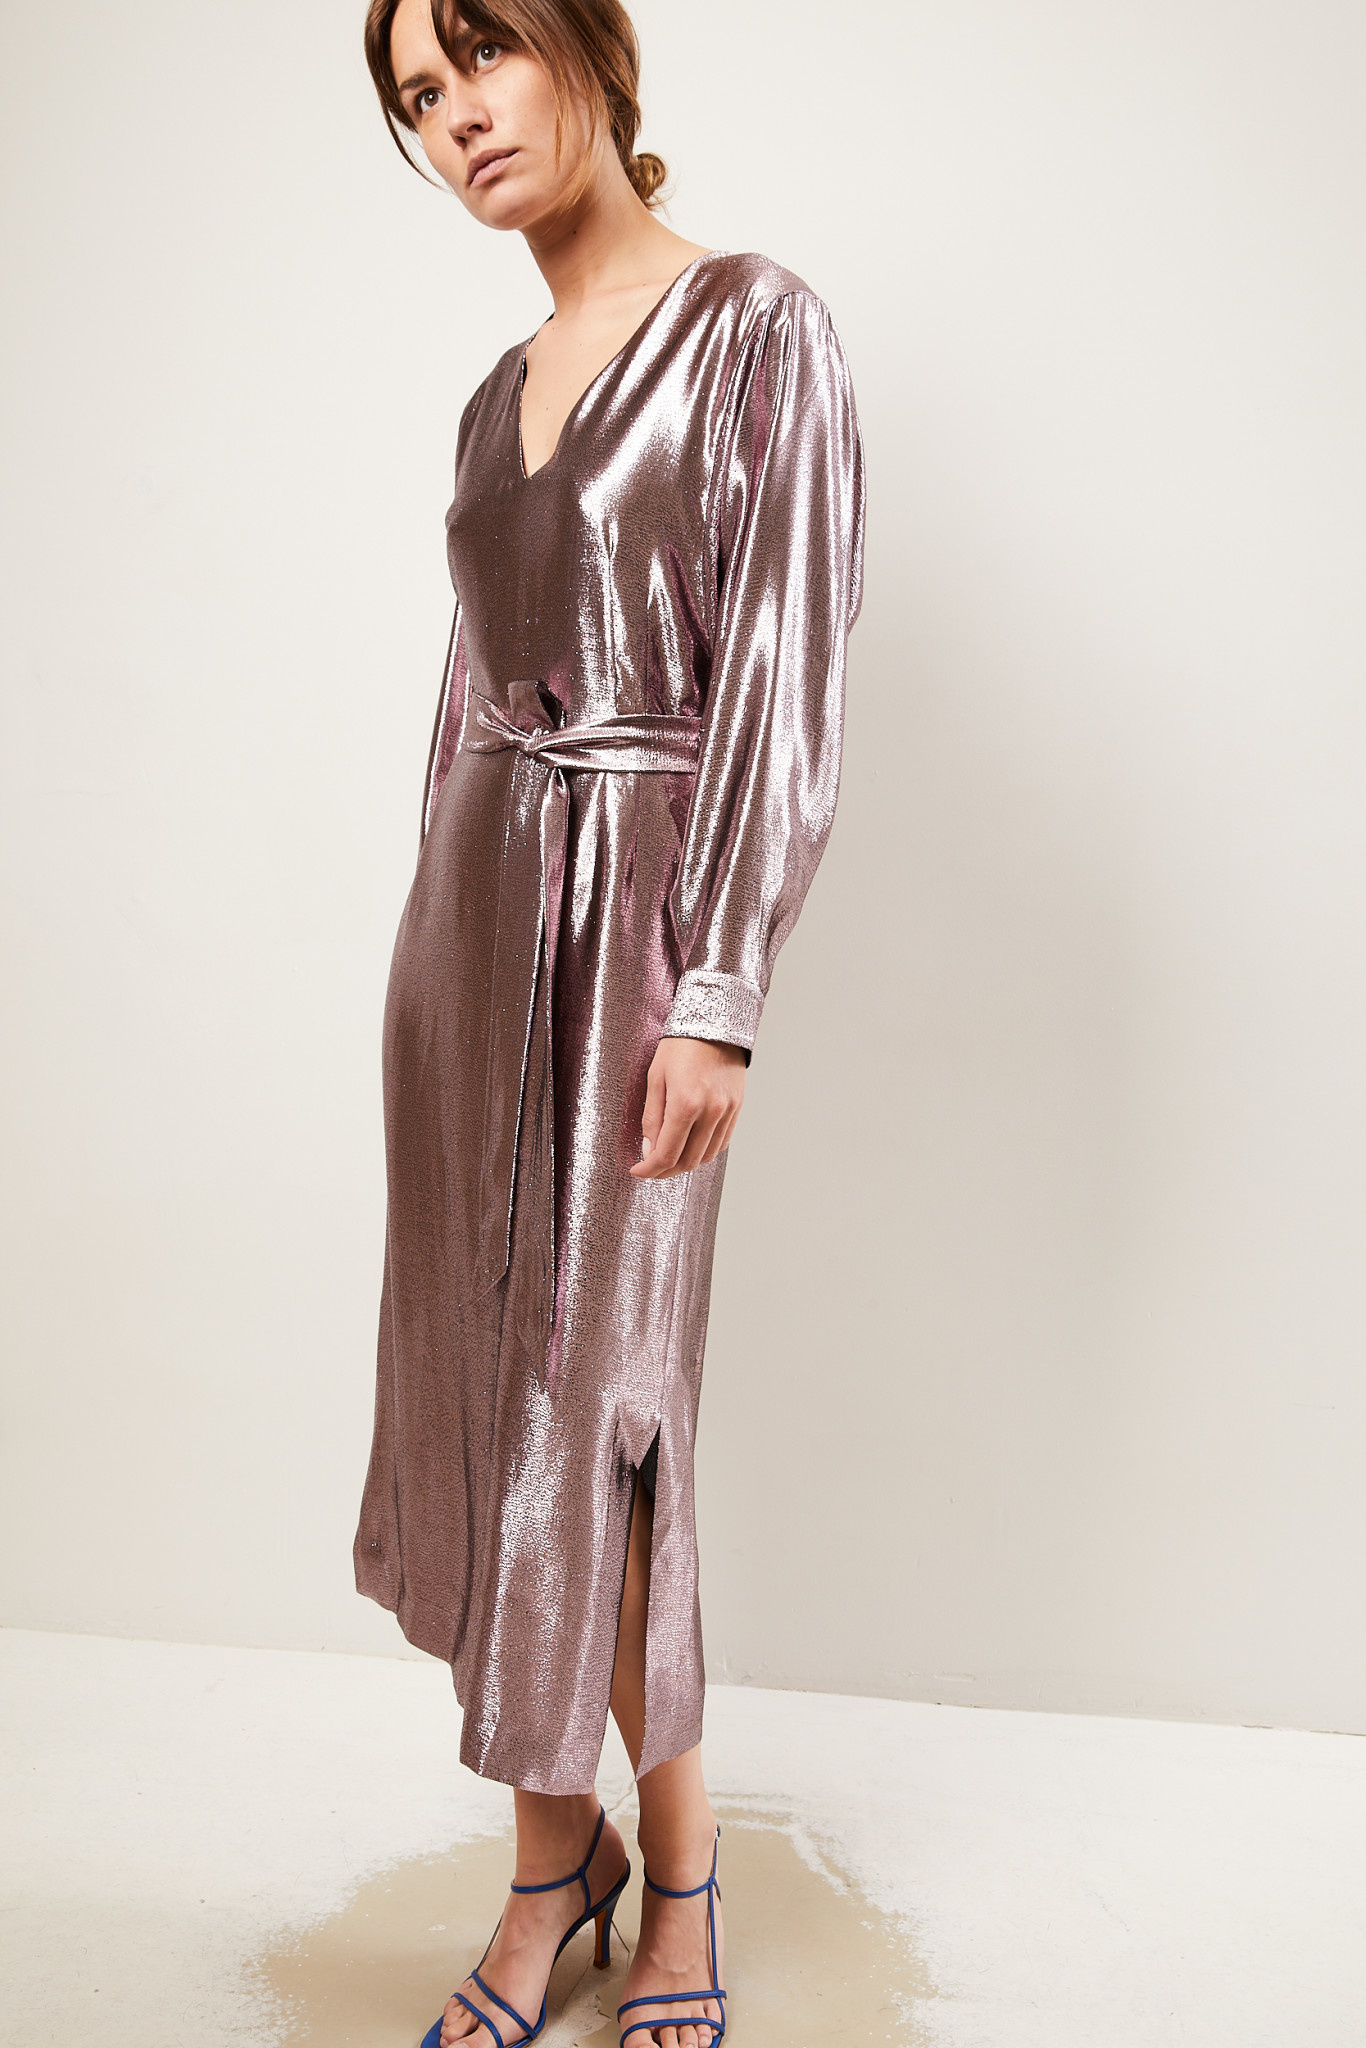 inDRESS - Fenouil dress